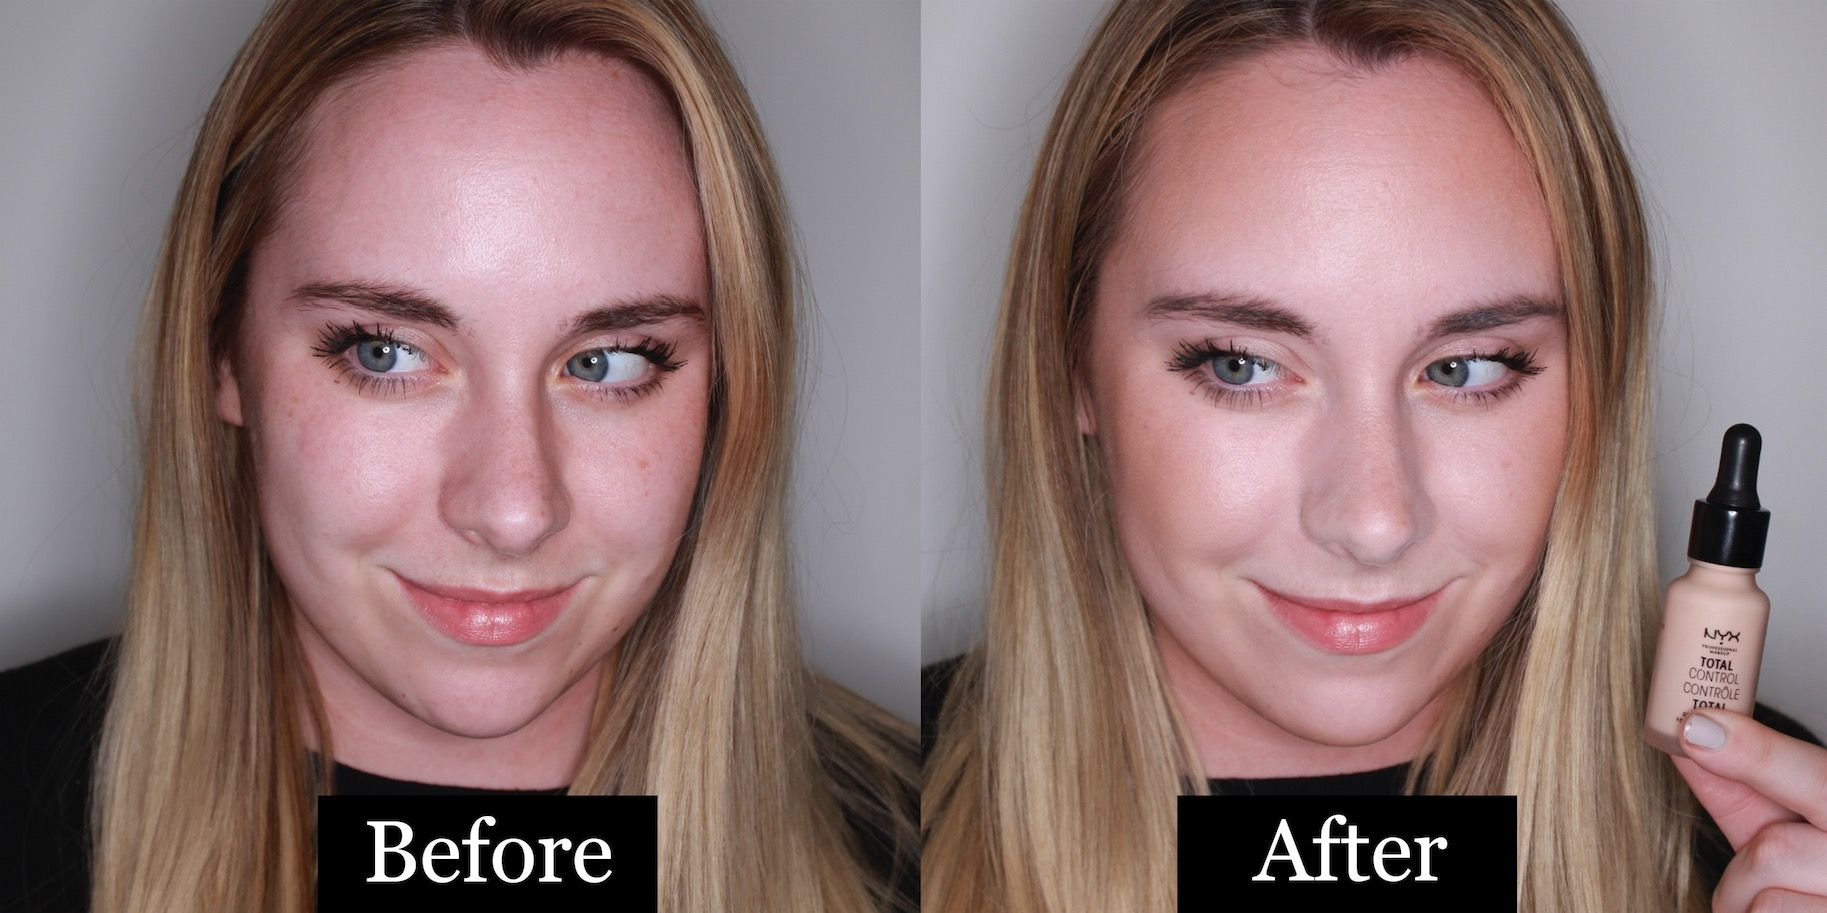 mac face and body foundation before and after. mac face and body foundation before after